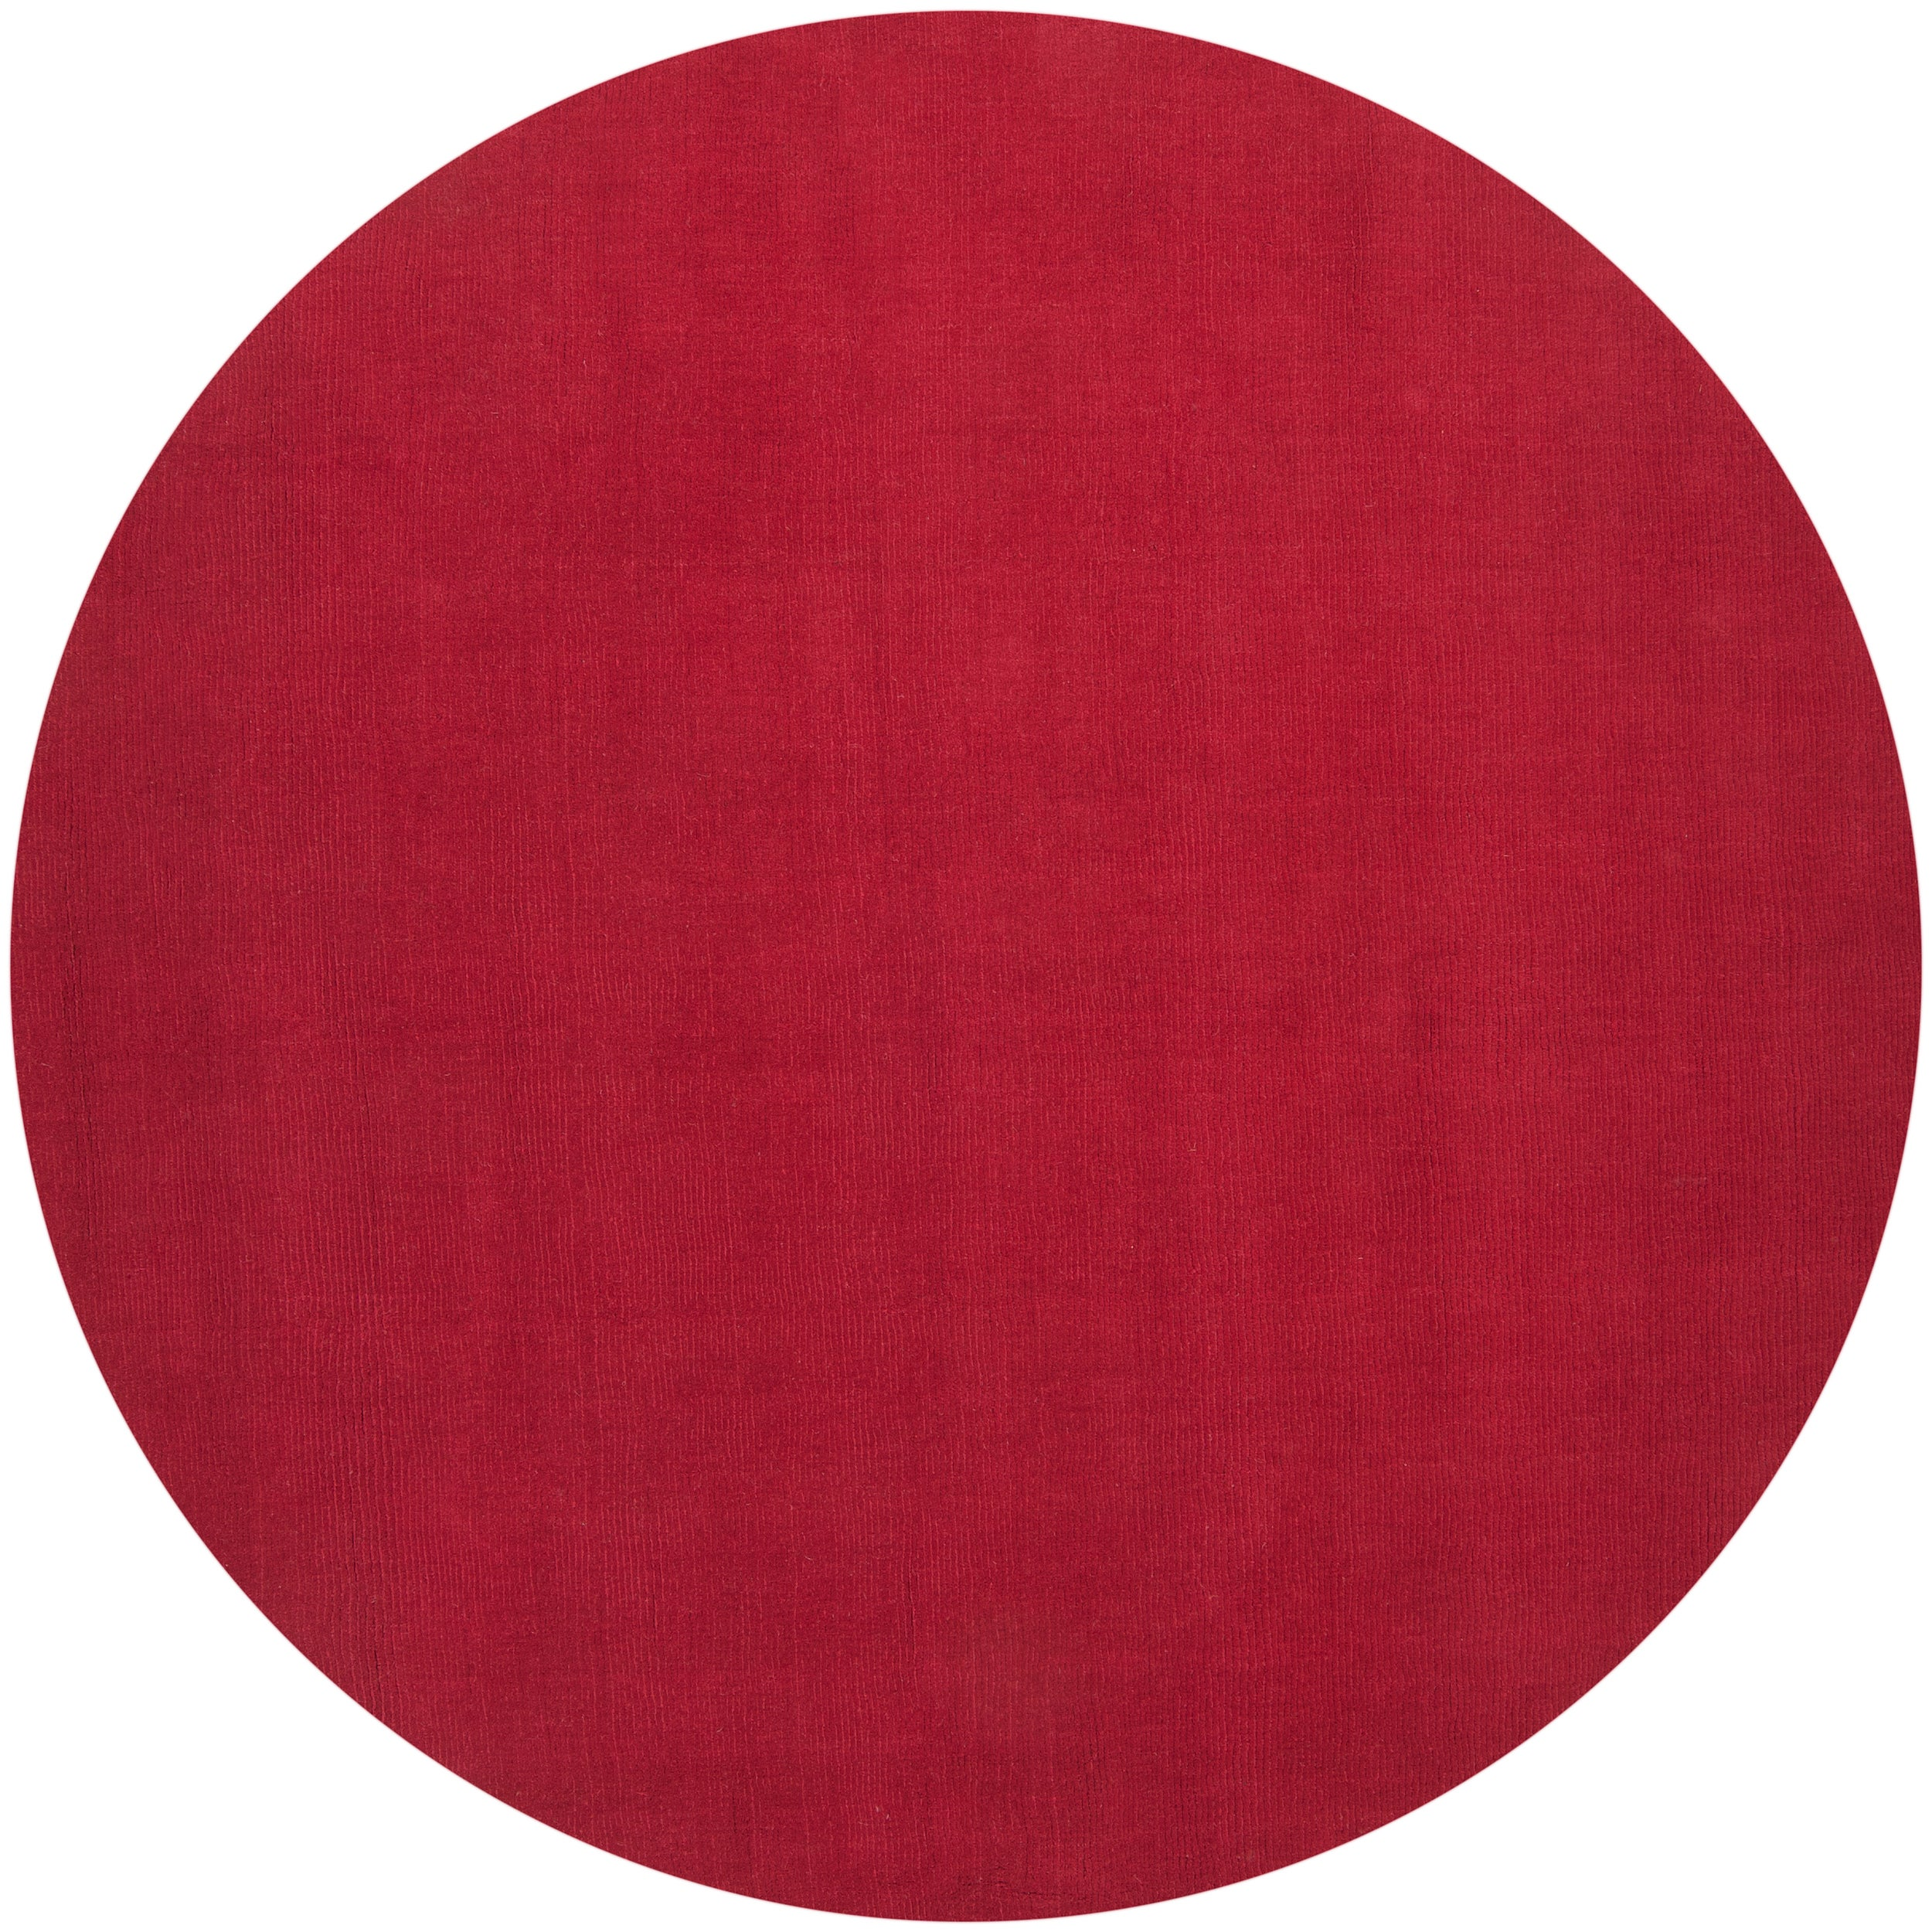 Hand-crafted Red Solid Casual Vaga Wool Area Rug (8' Round)